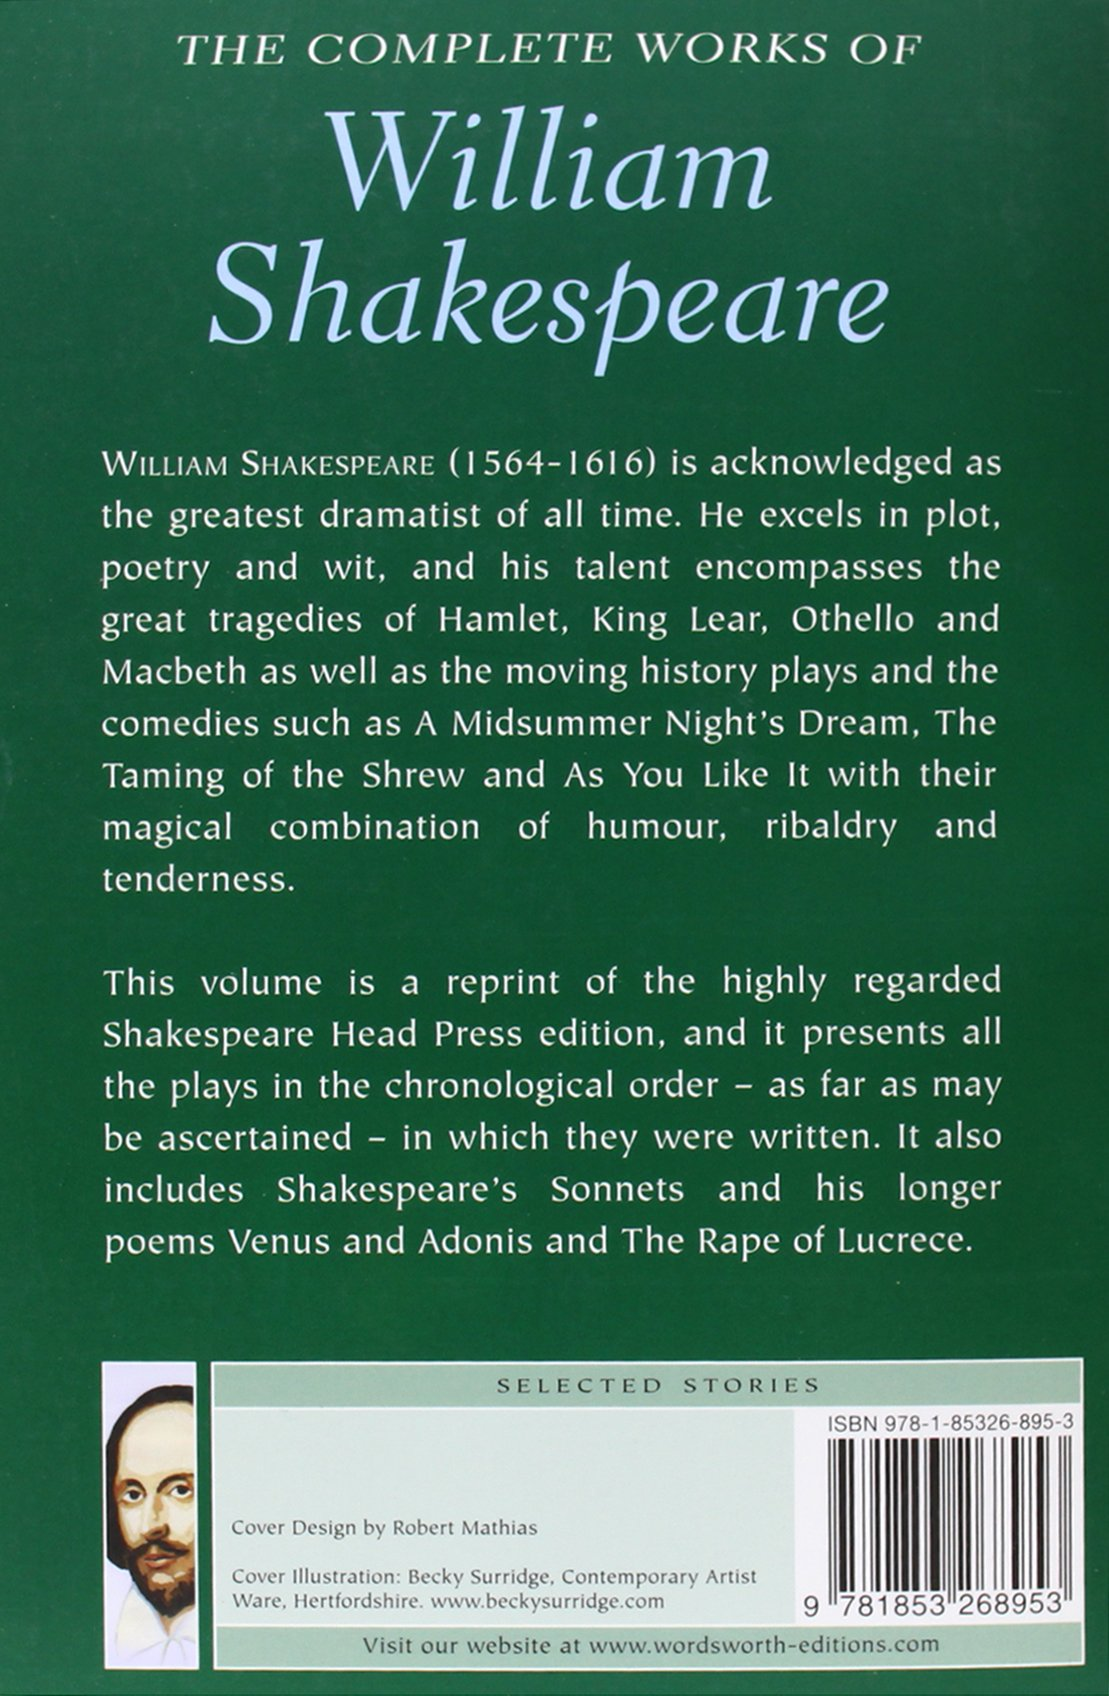 complete works of william shakespeare william shakespeare complete works of william shakespeare william shakespeare 9781853268953 books ca